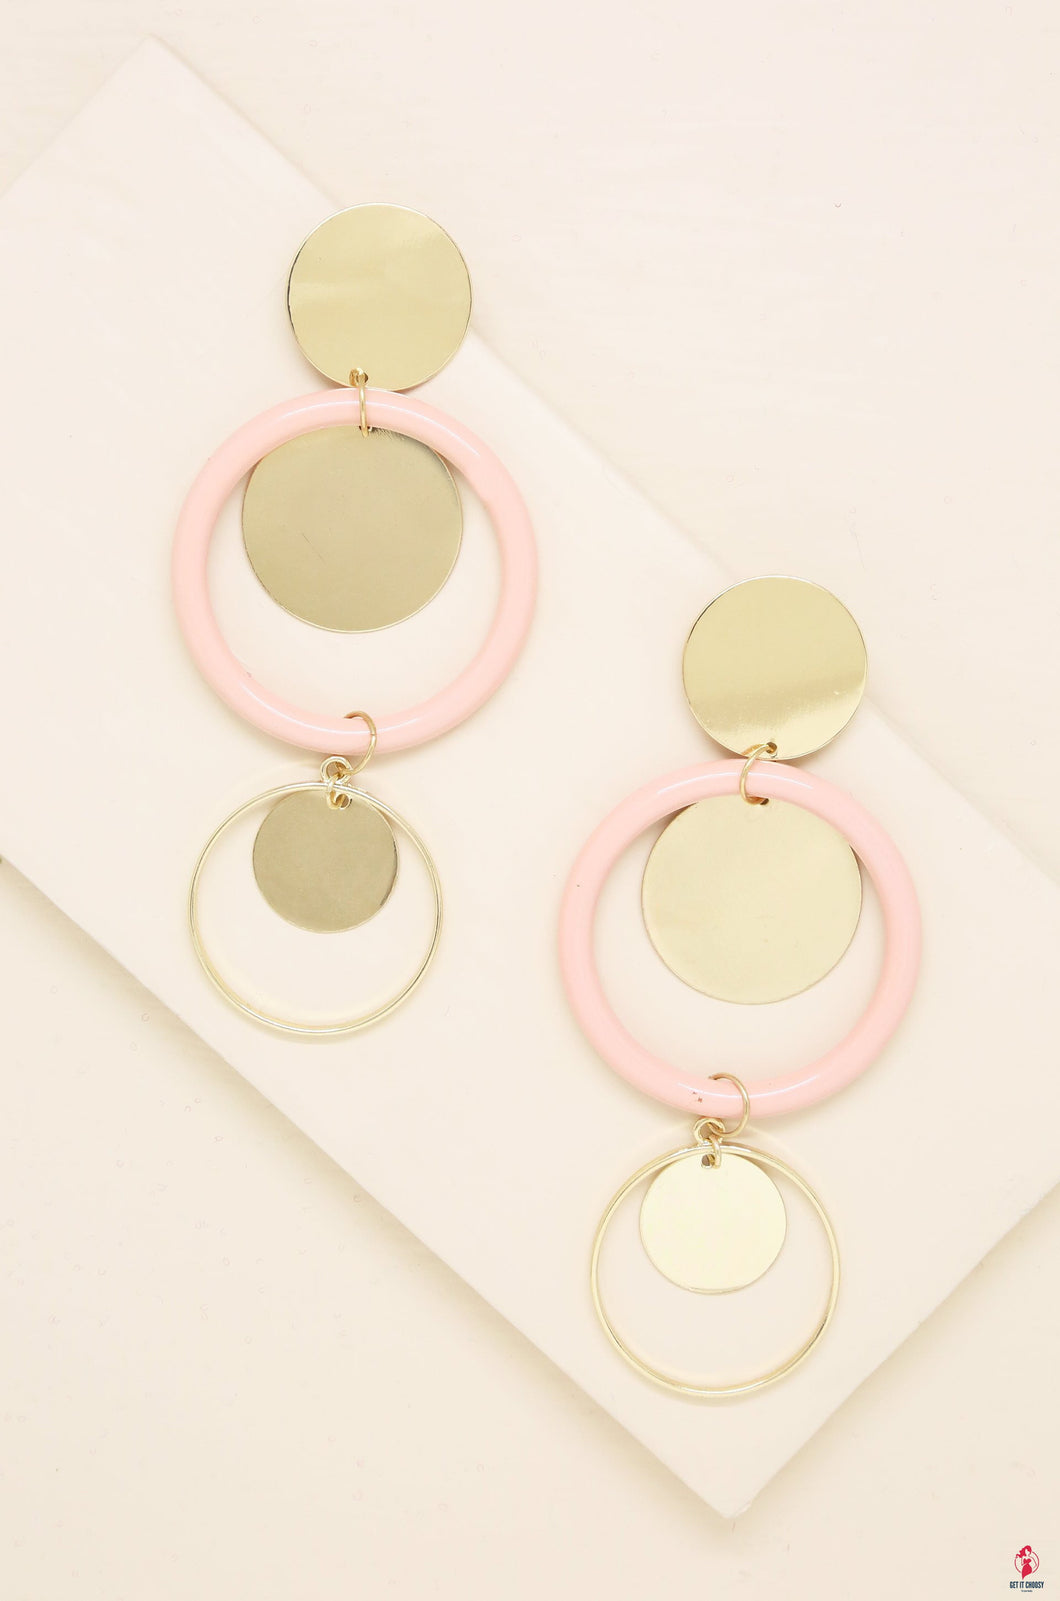 Petunia Earrings in Light Pink and Gold by Getitchoosy